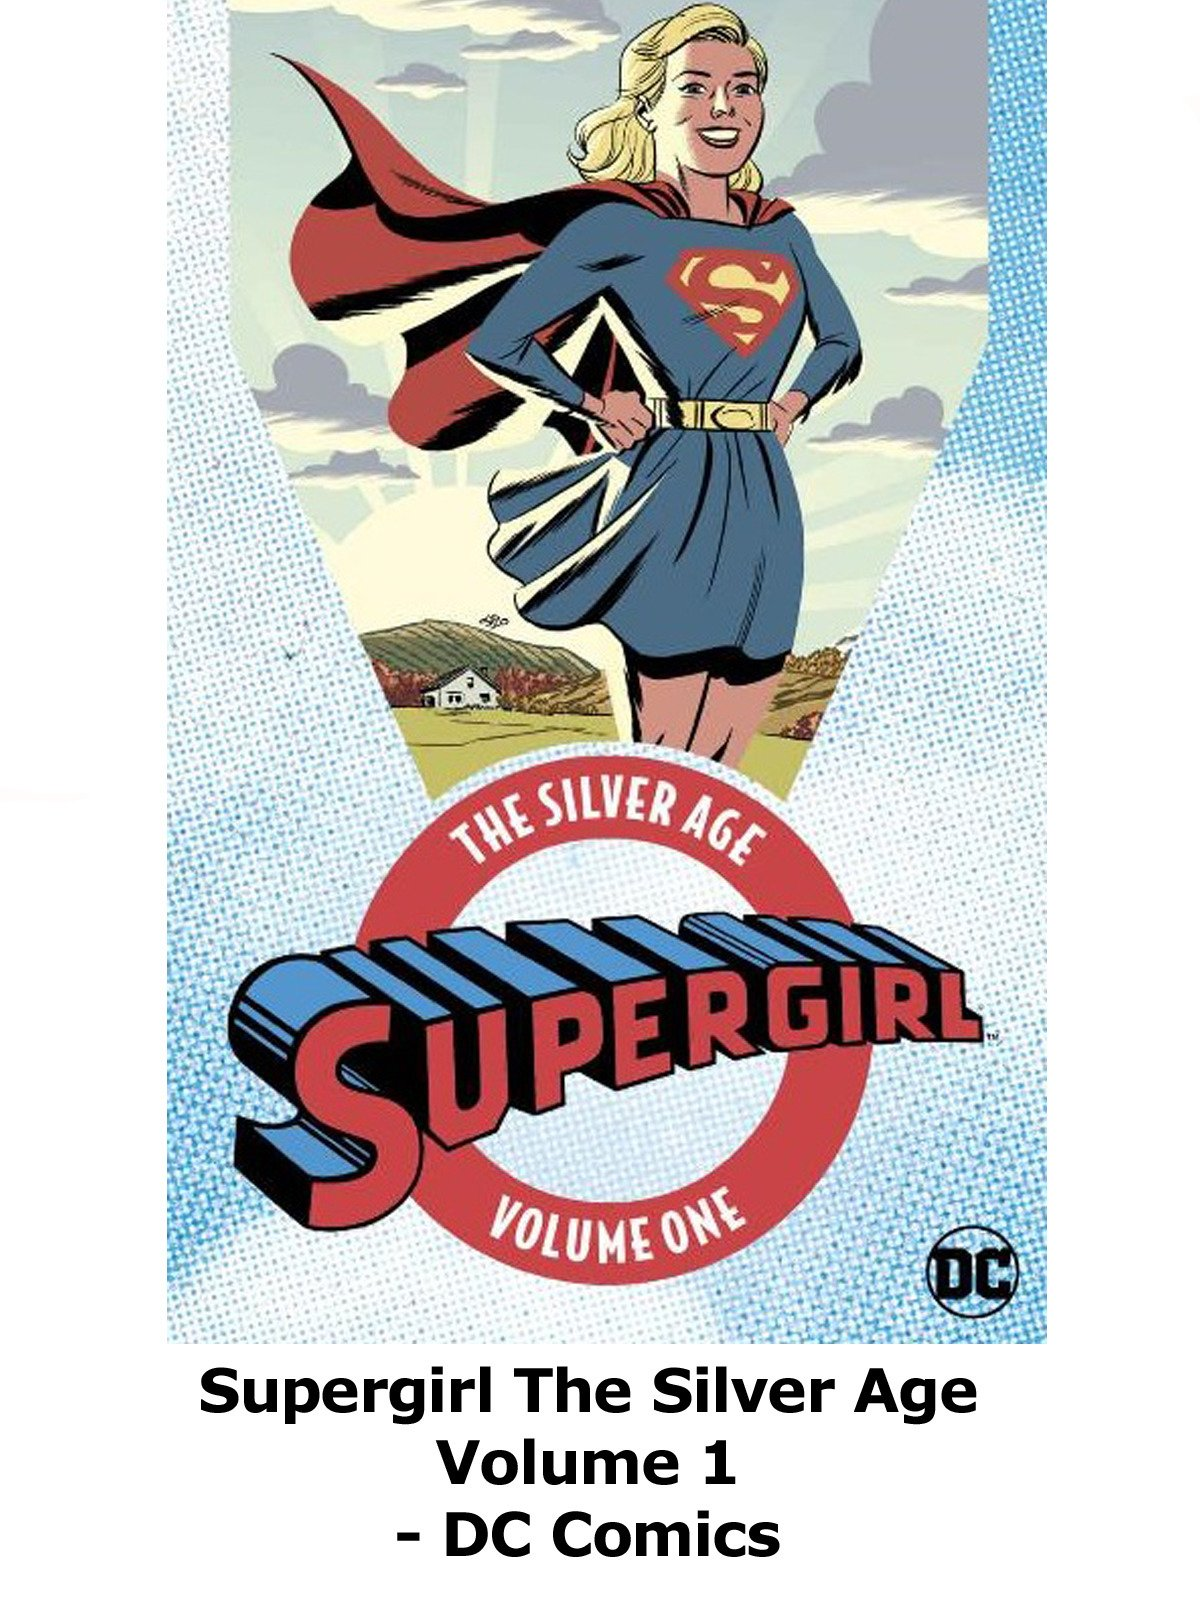 Review: Supergirl The Silver Age Volume 1